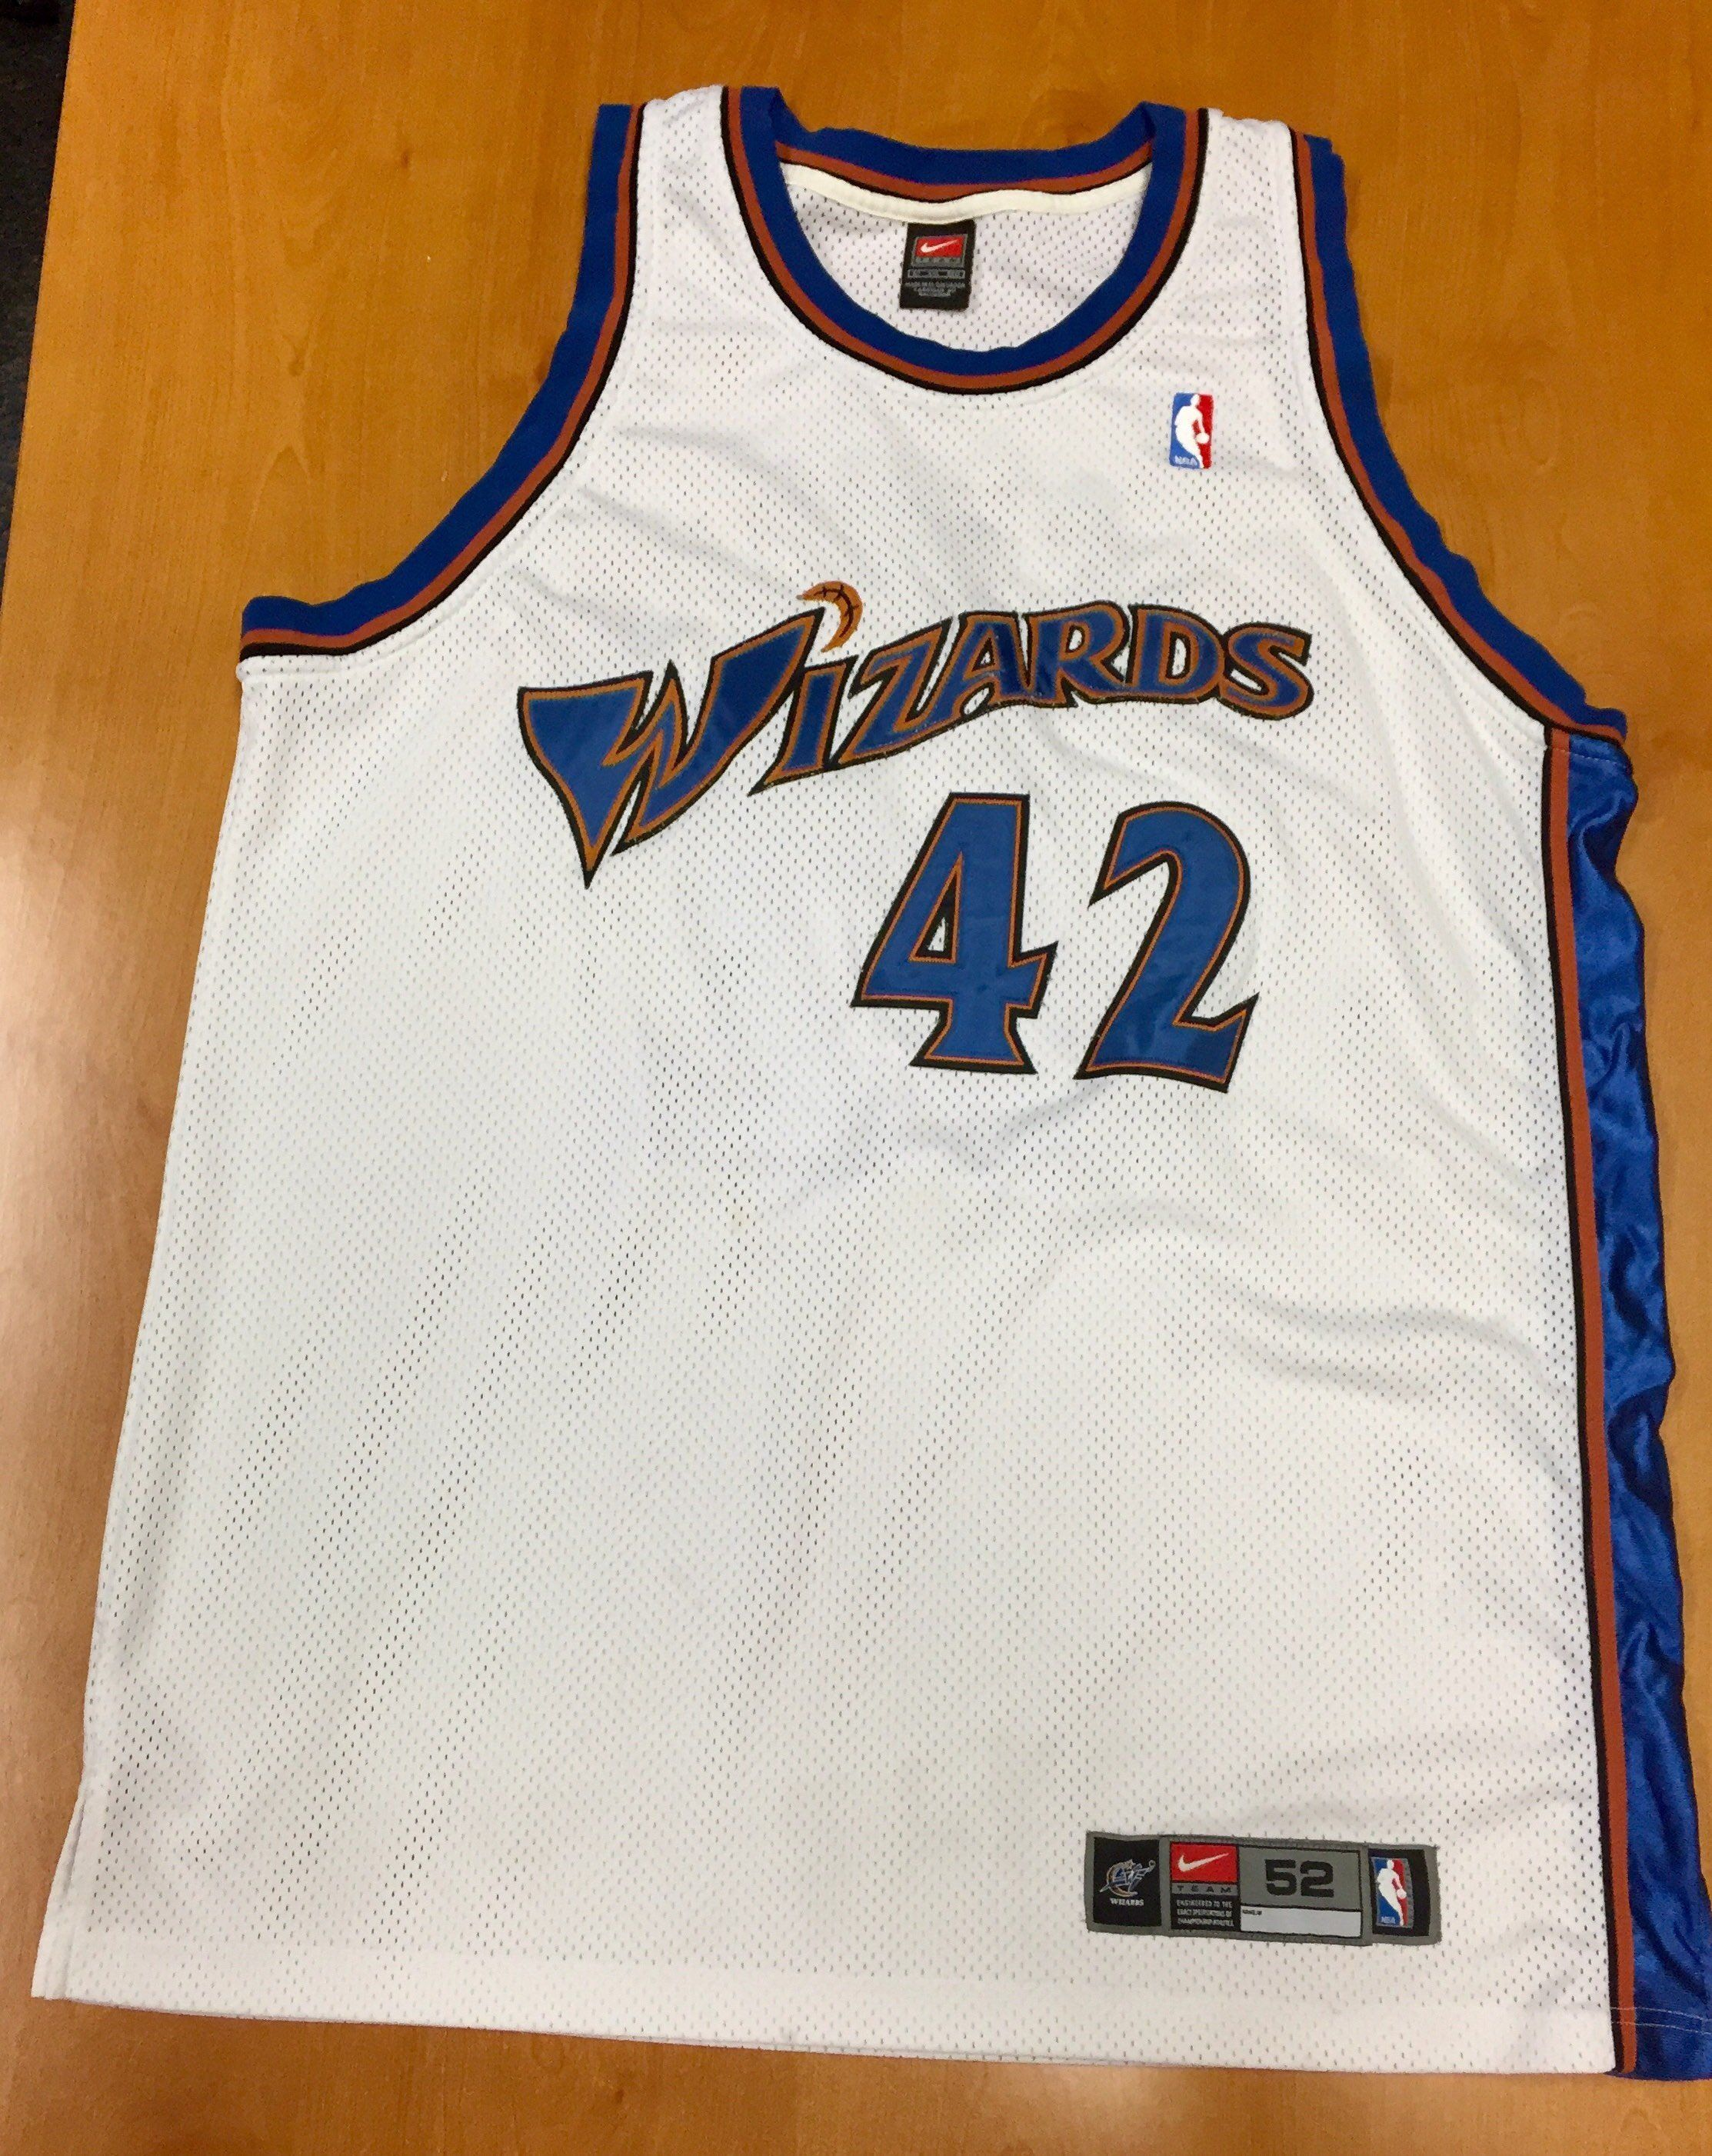 new arrival 9f3bb 1c2b5 Vintage 1990s Jerry Stackhouse Washington Wizards Authentic ...